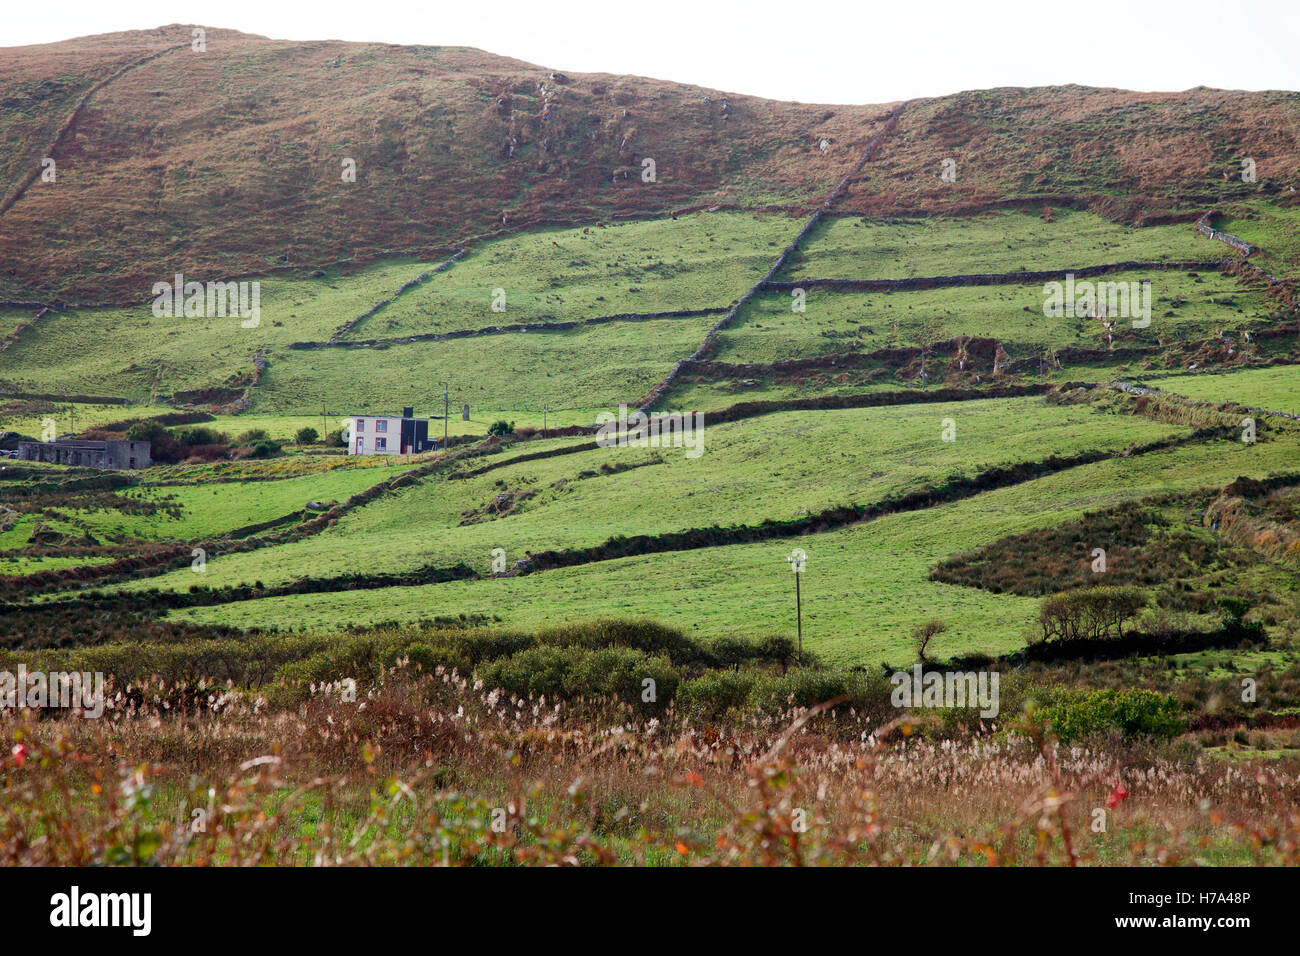 Hill farming in County Kerry, Ireland - Stock Image